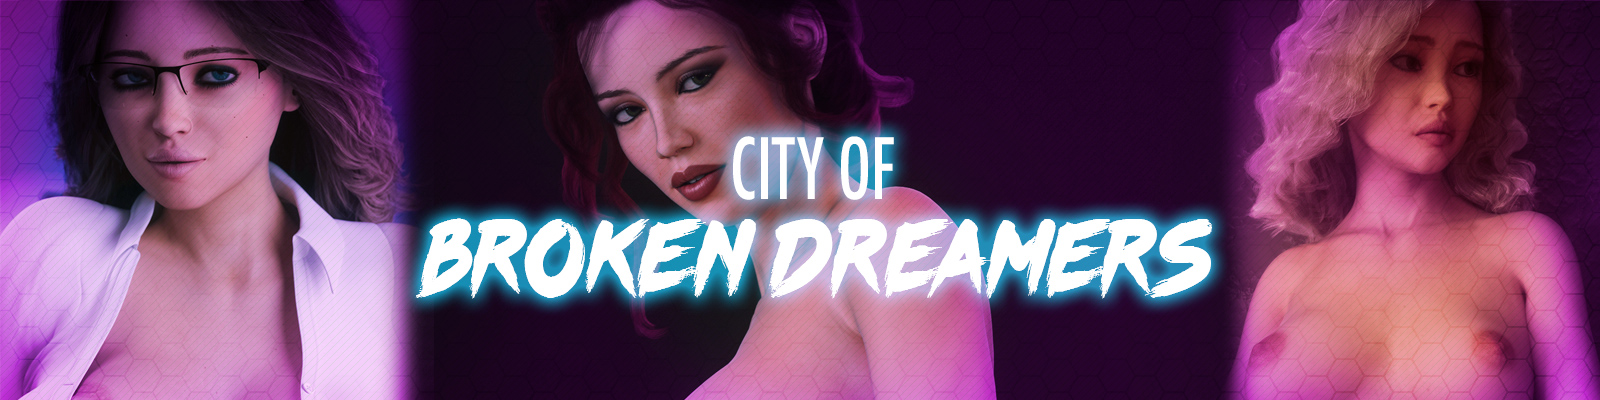 City of Broken Dreamers [PhillyGames]